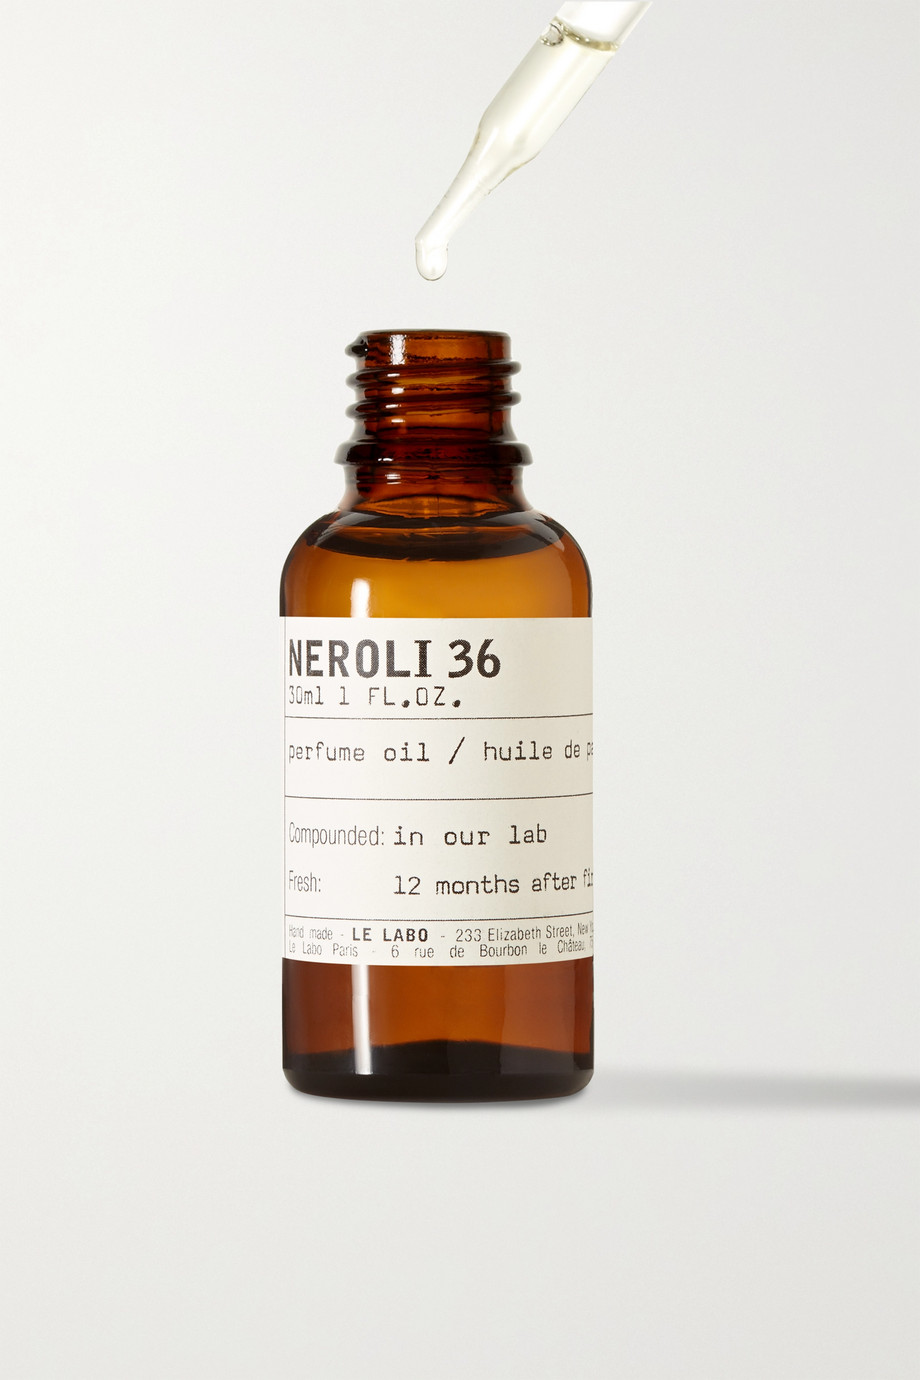 Le Labo Neroli 36 Perfume Oil, 30ml